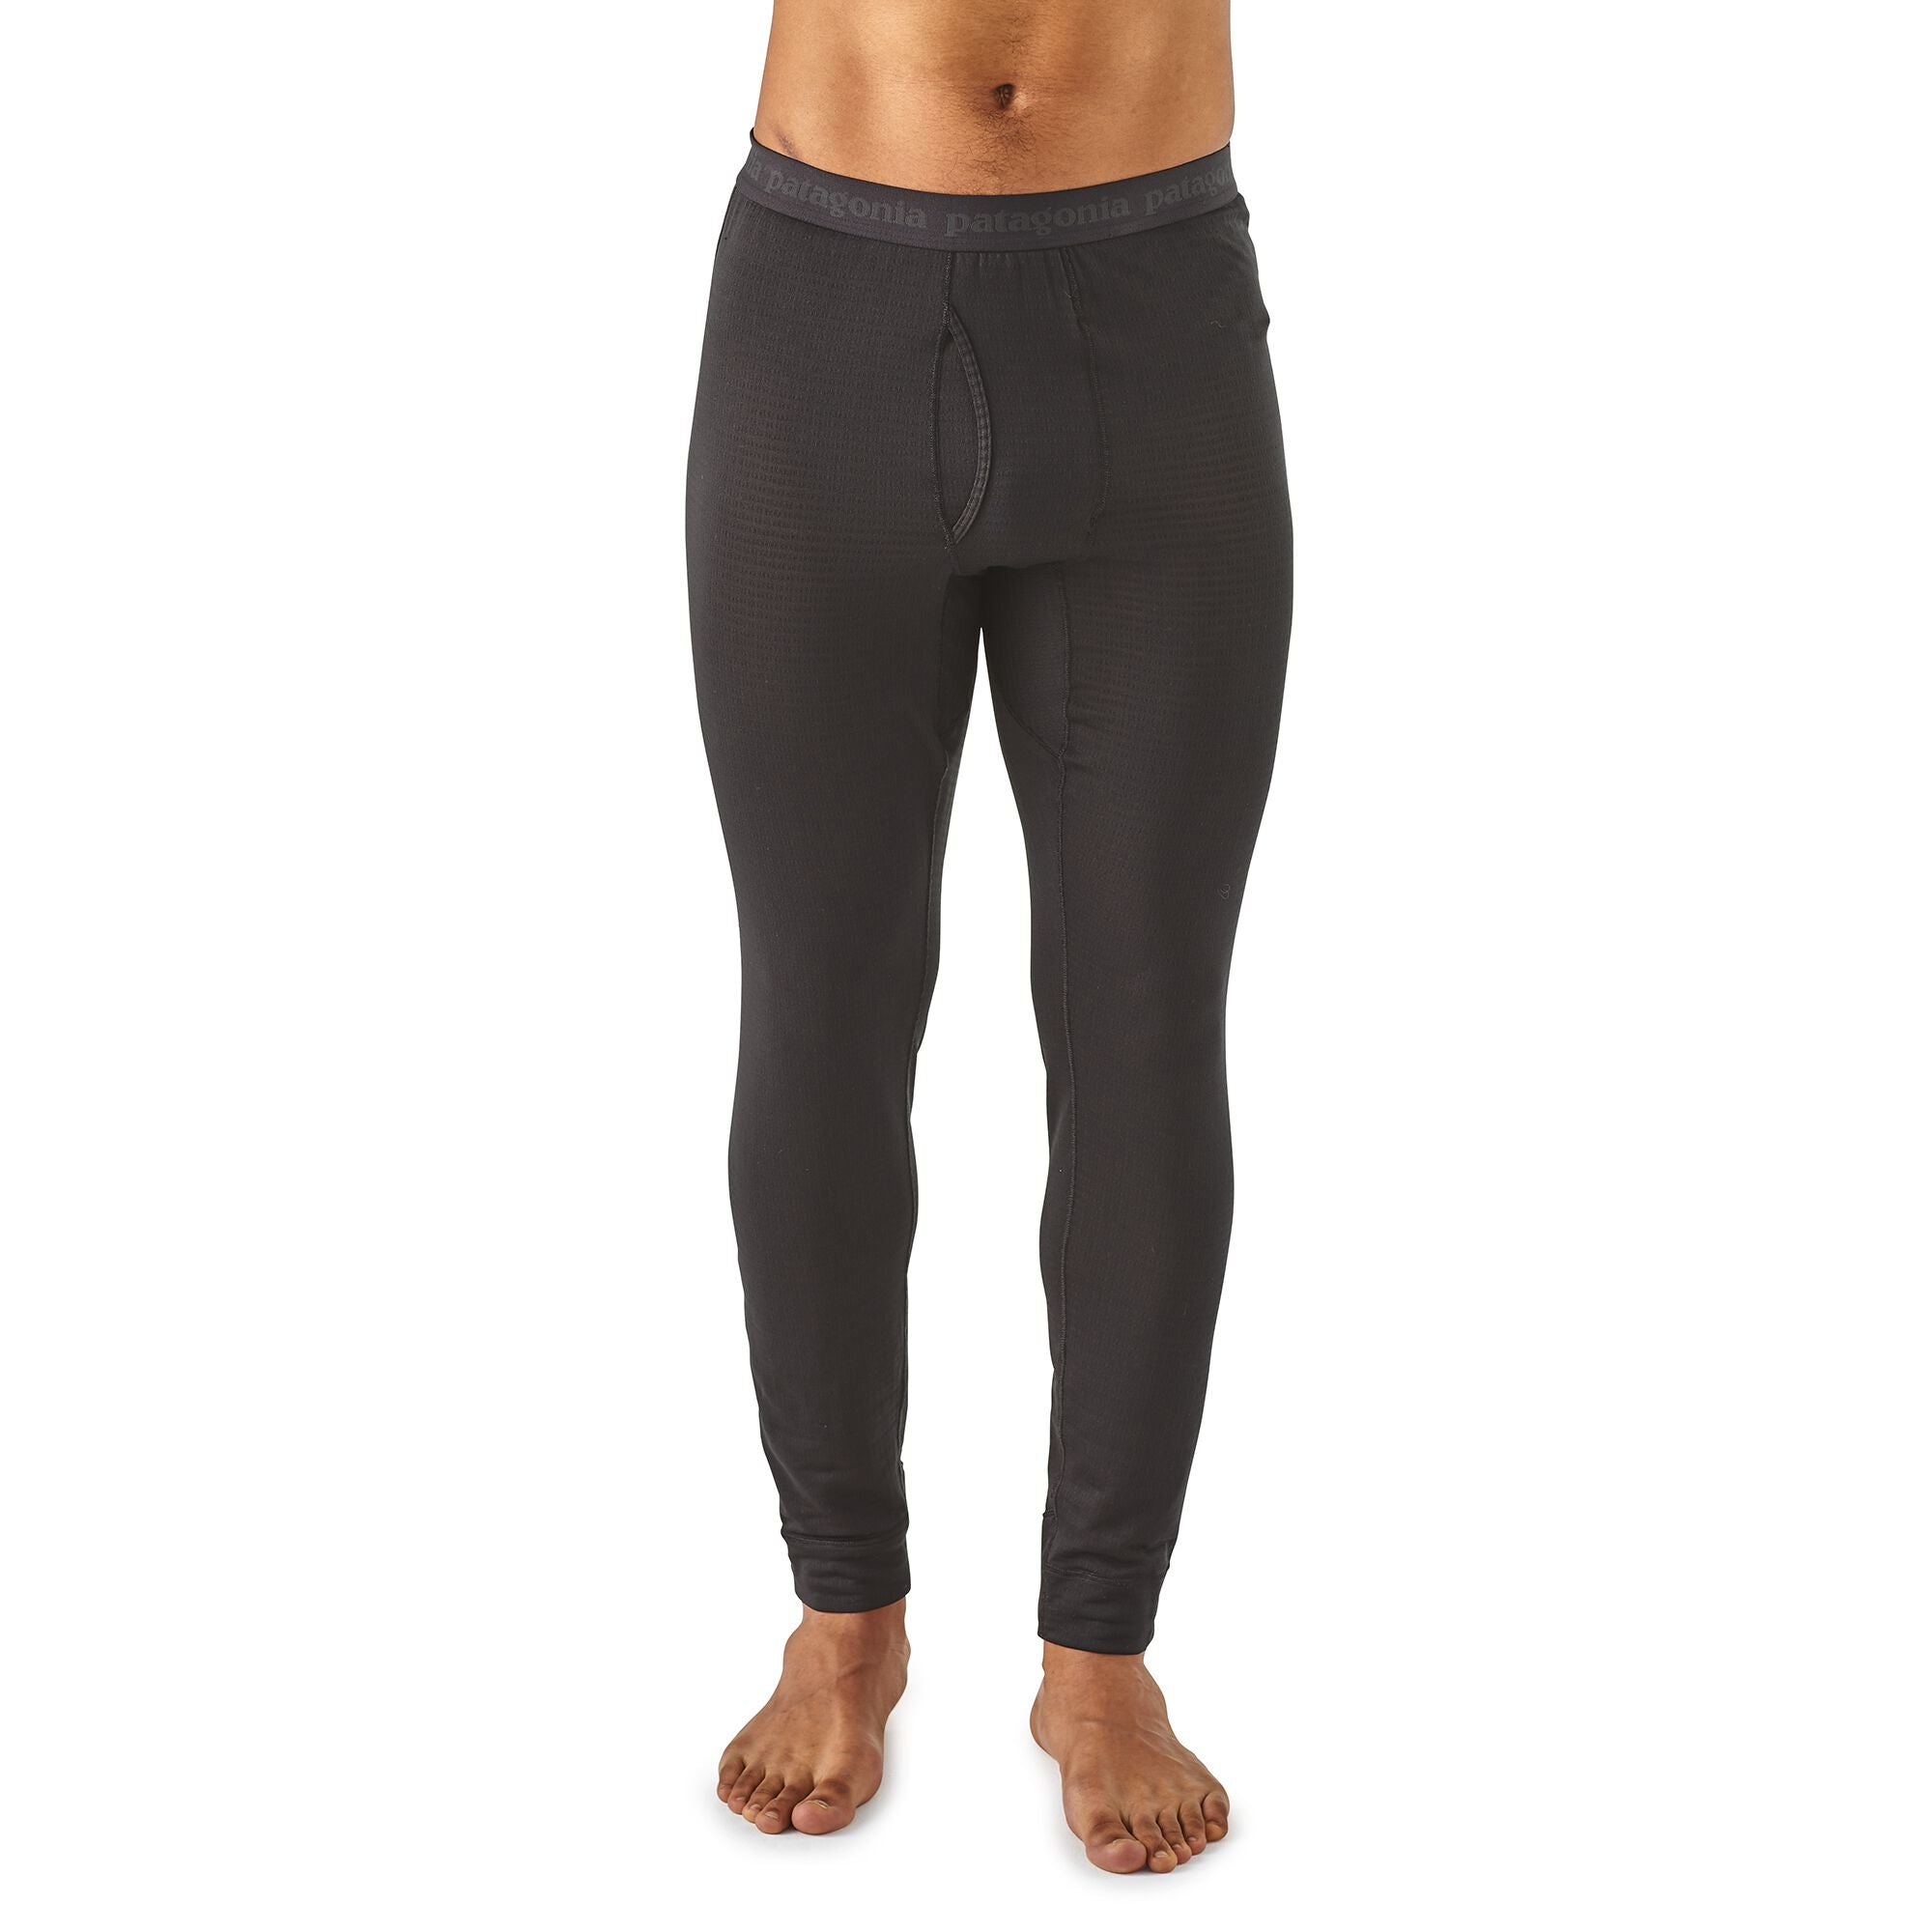 Primera Capa Pantalón Hombre Capilene® Thermal Weight Bottoms Negro Patagonia